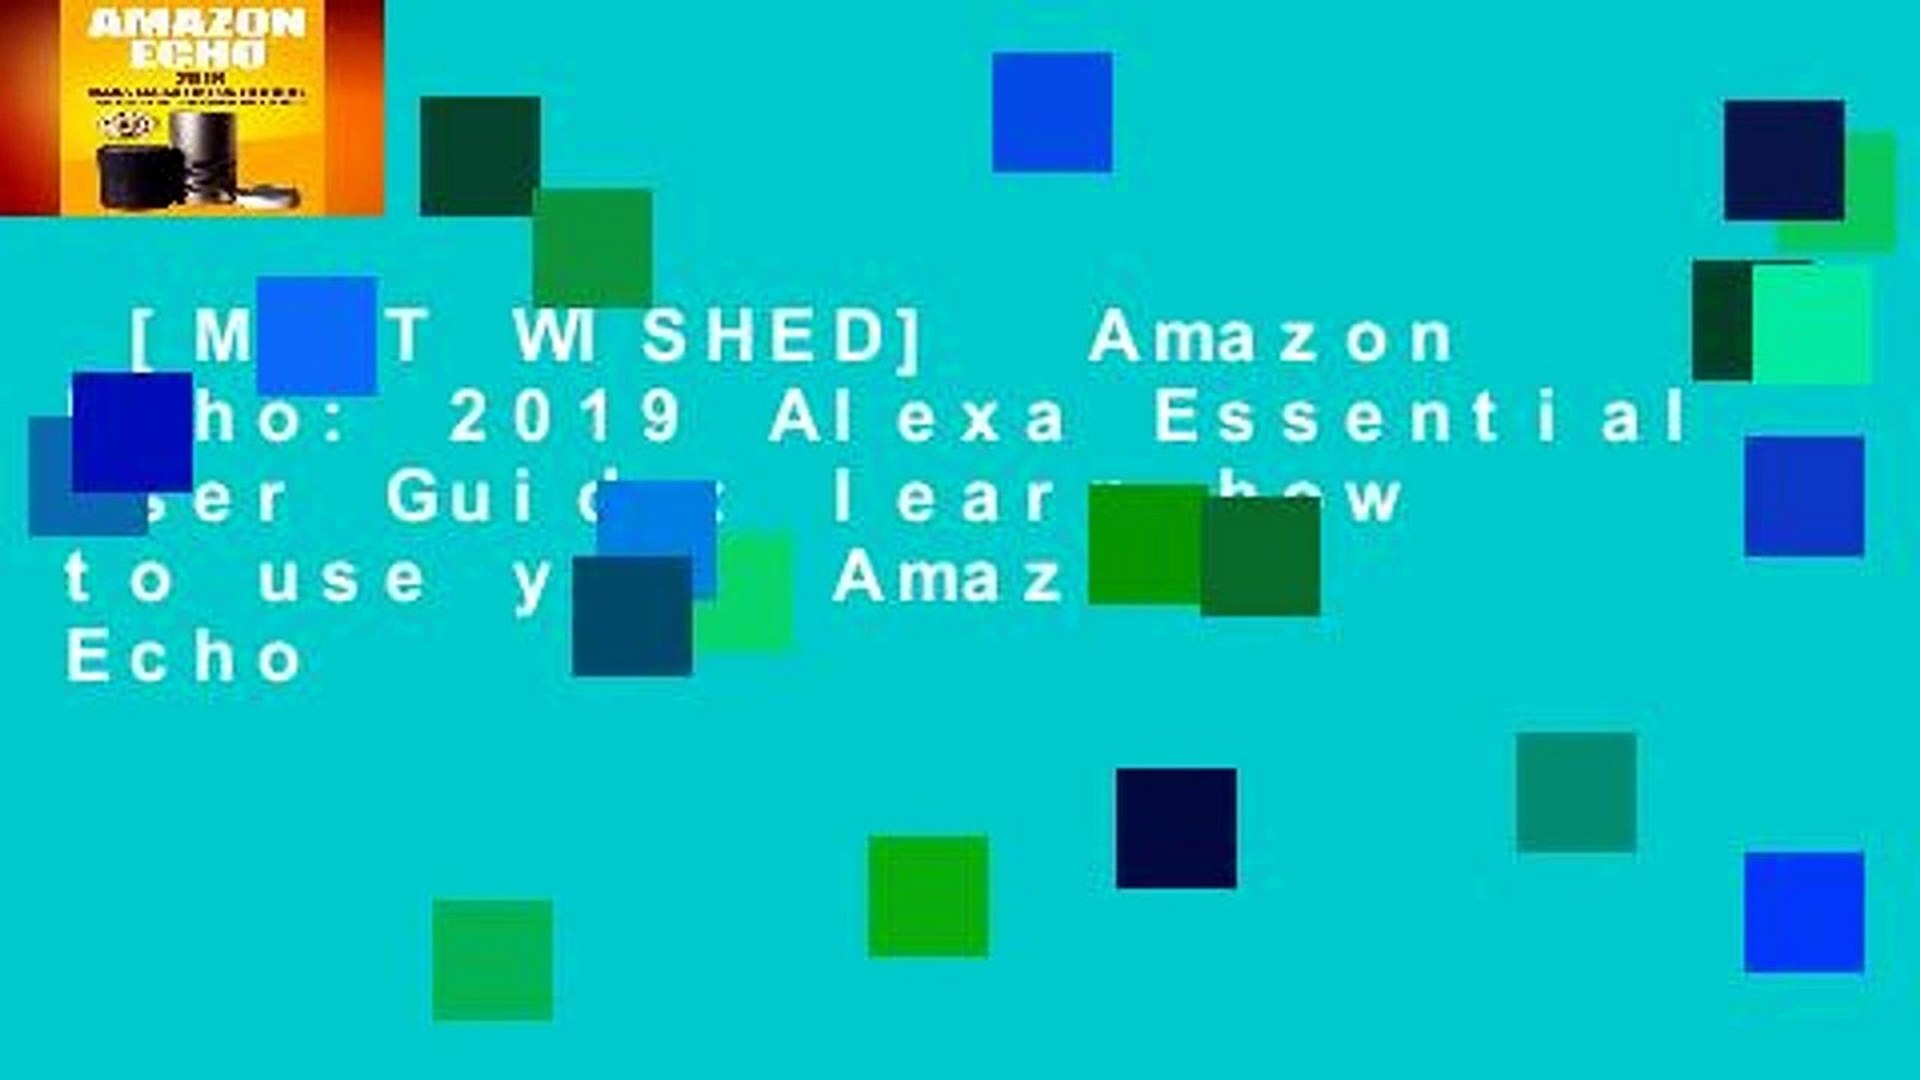 [MOST WISHED]  Amazon Echo: 2019 Alexa Essential User Guide: learn how to use your Amazon Echo